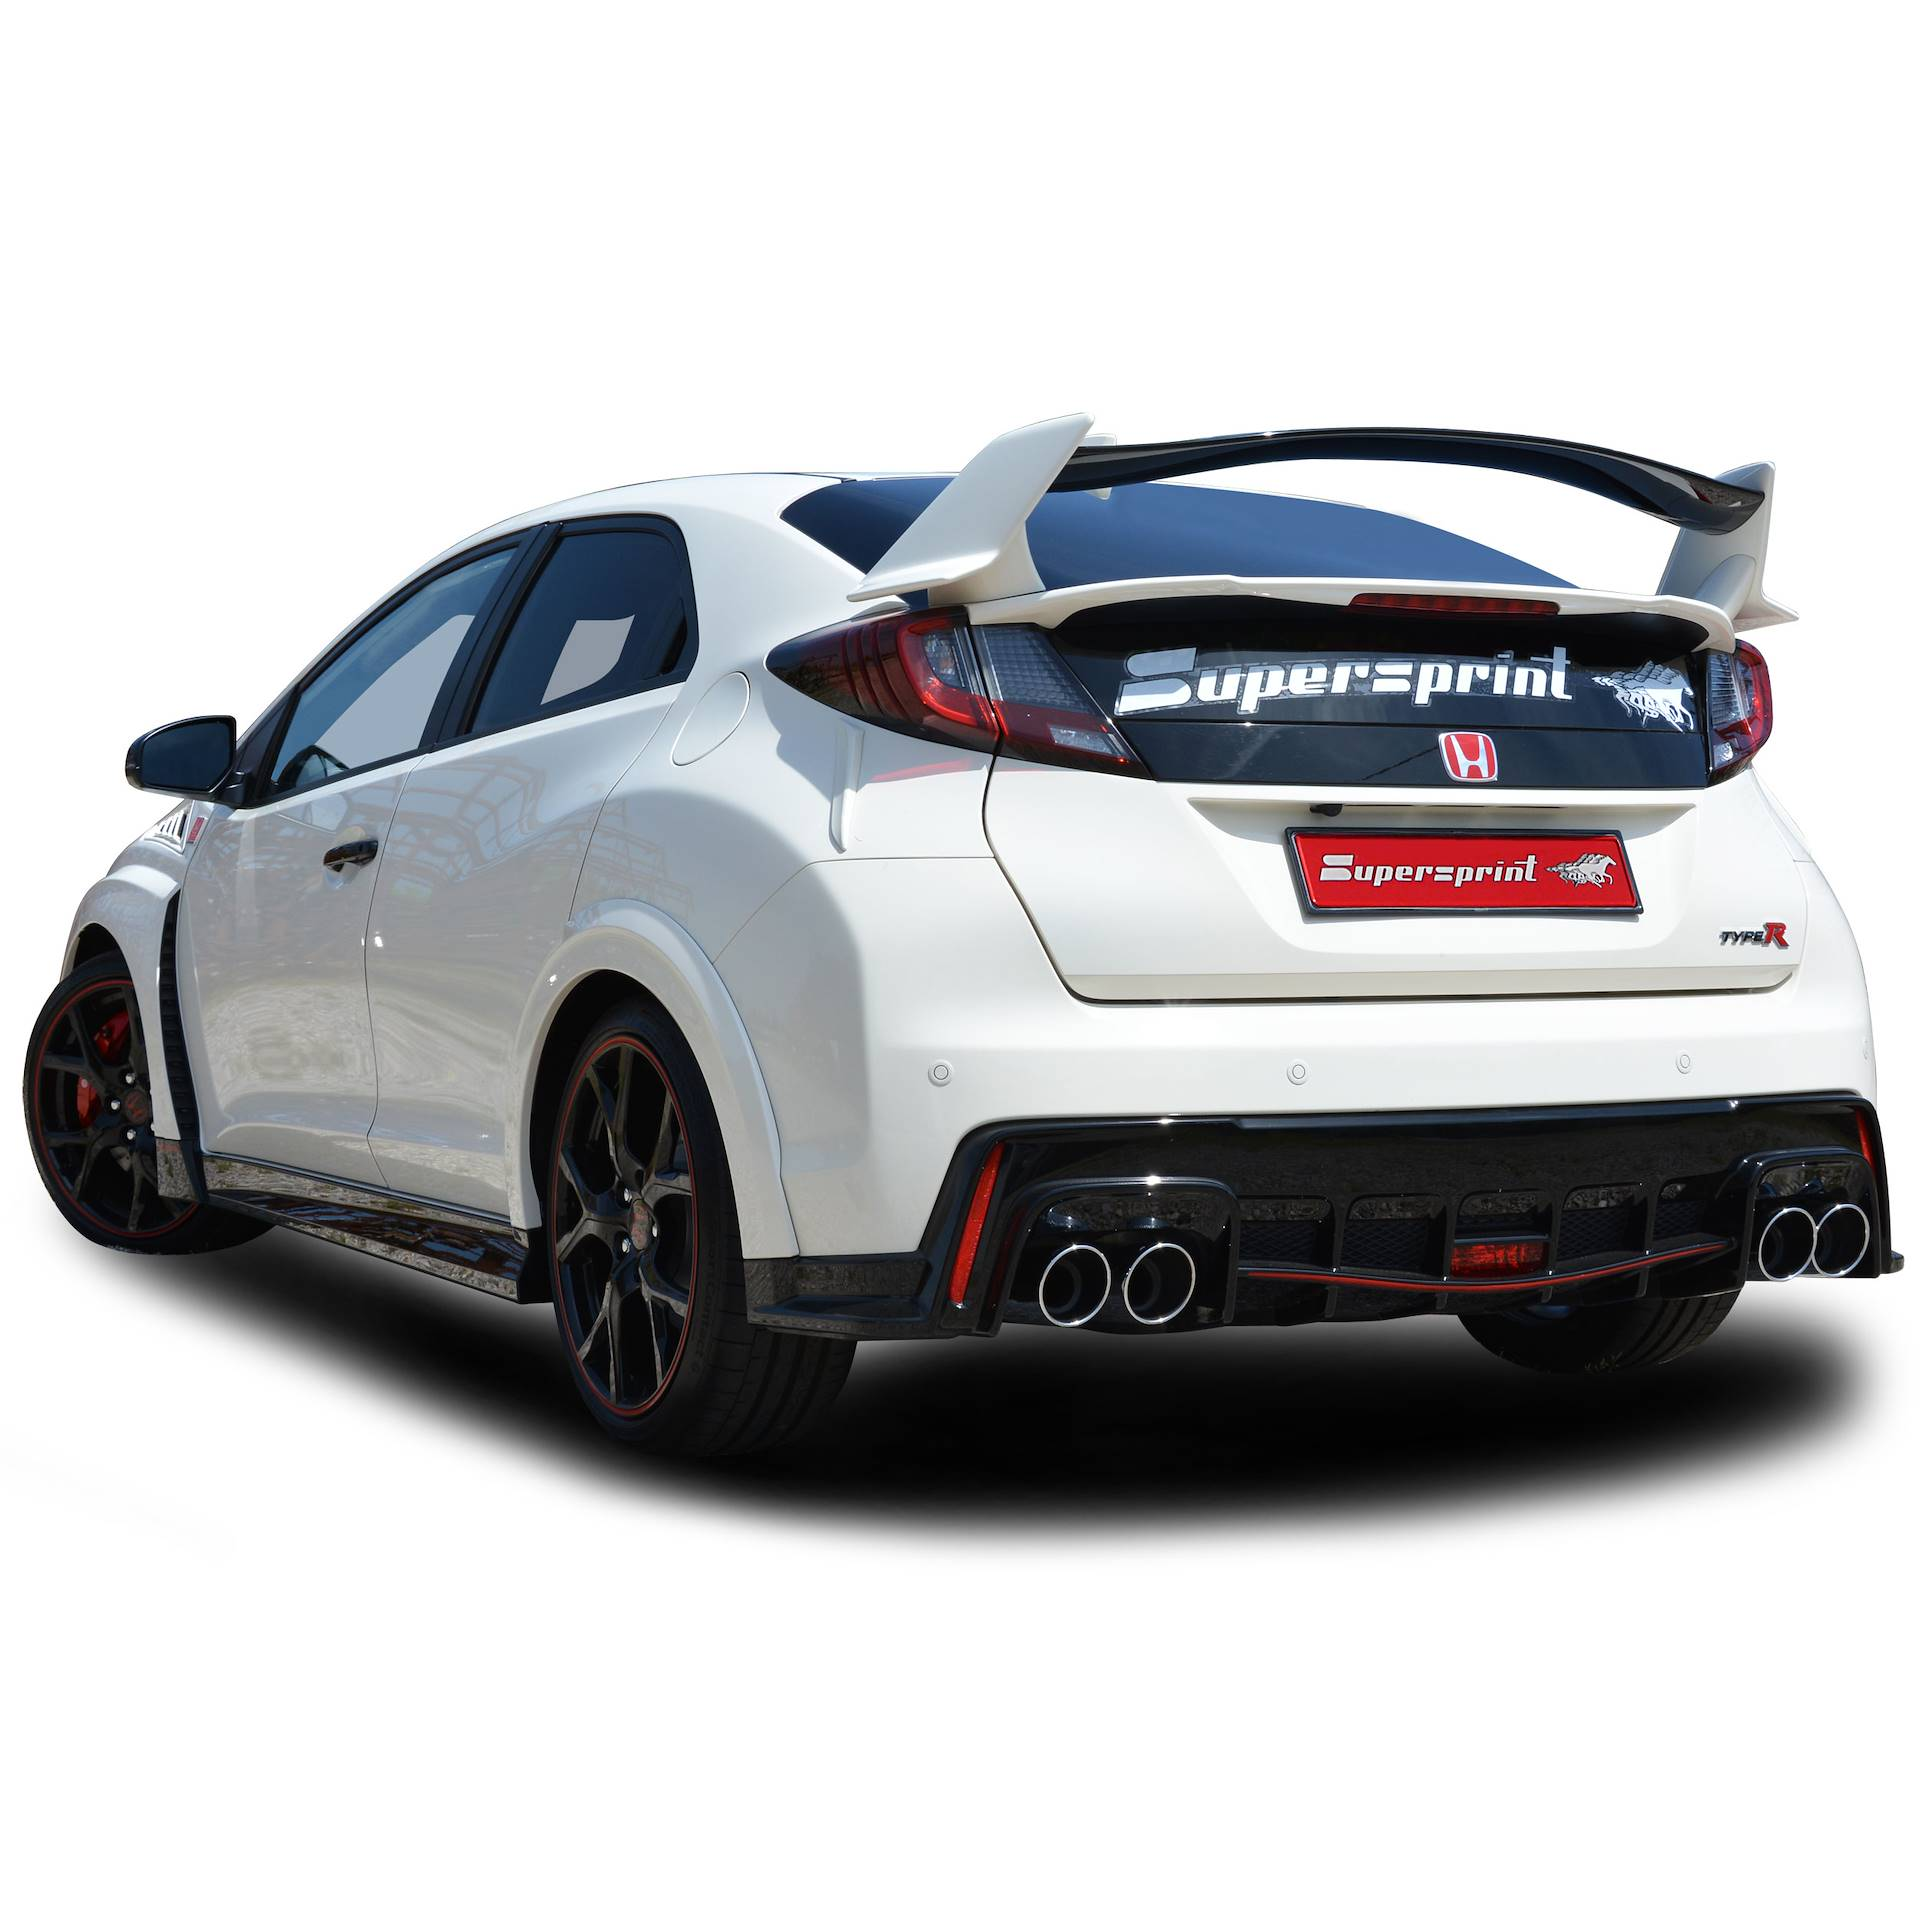 HONDA CIVIC 2.0i Turbo TYPE-R (310Hp) 2015 -> (con valvola)